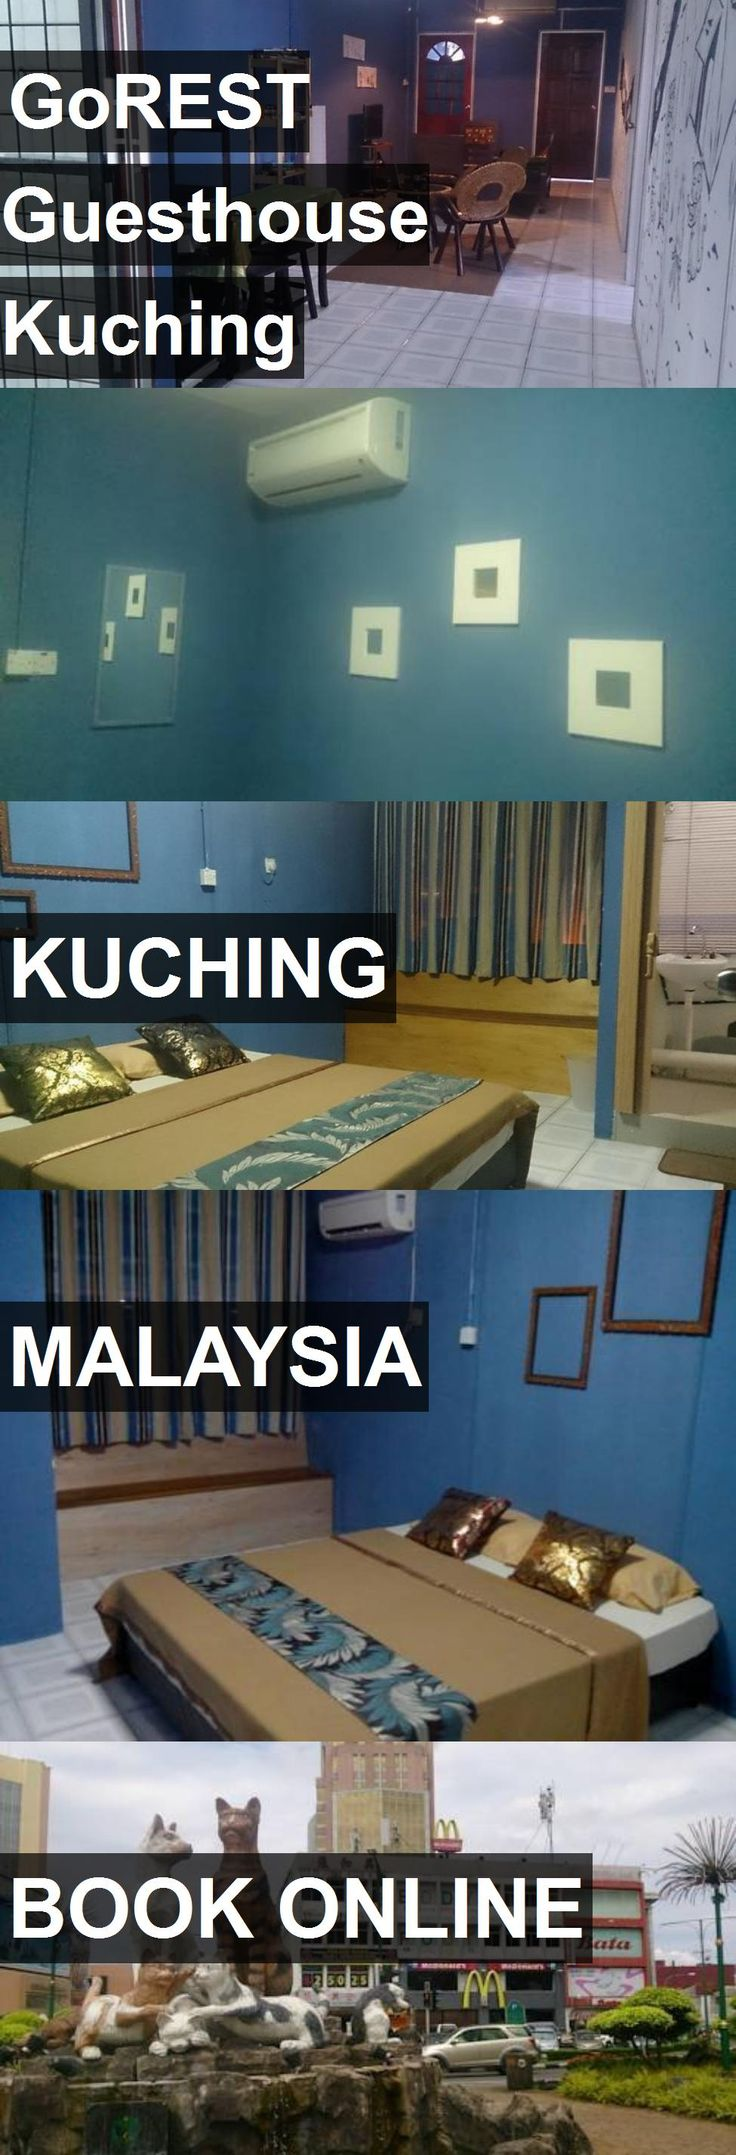 Hotel GoREST Guesthouse Kuching in Kuching, Malaysia. For more information, photos, reviews and best prices please follow the link. #Malaysia #Kuching #travel #vacation #hotel